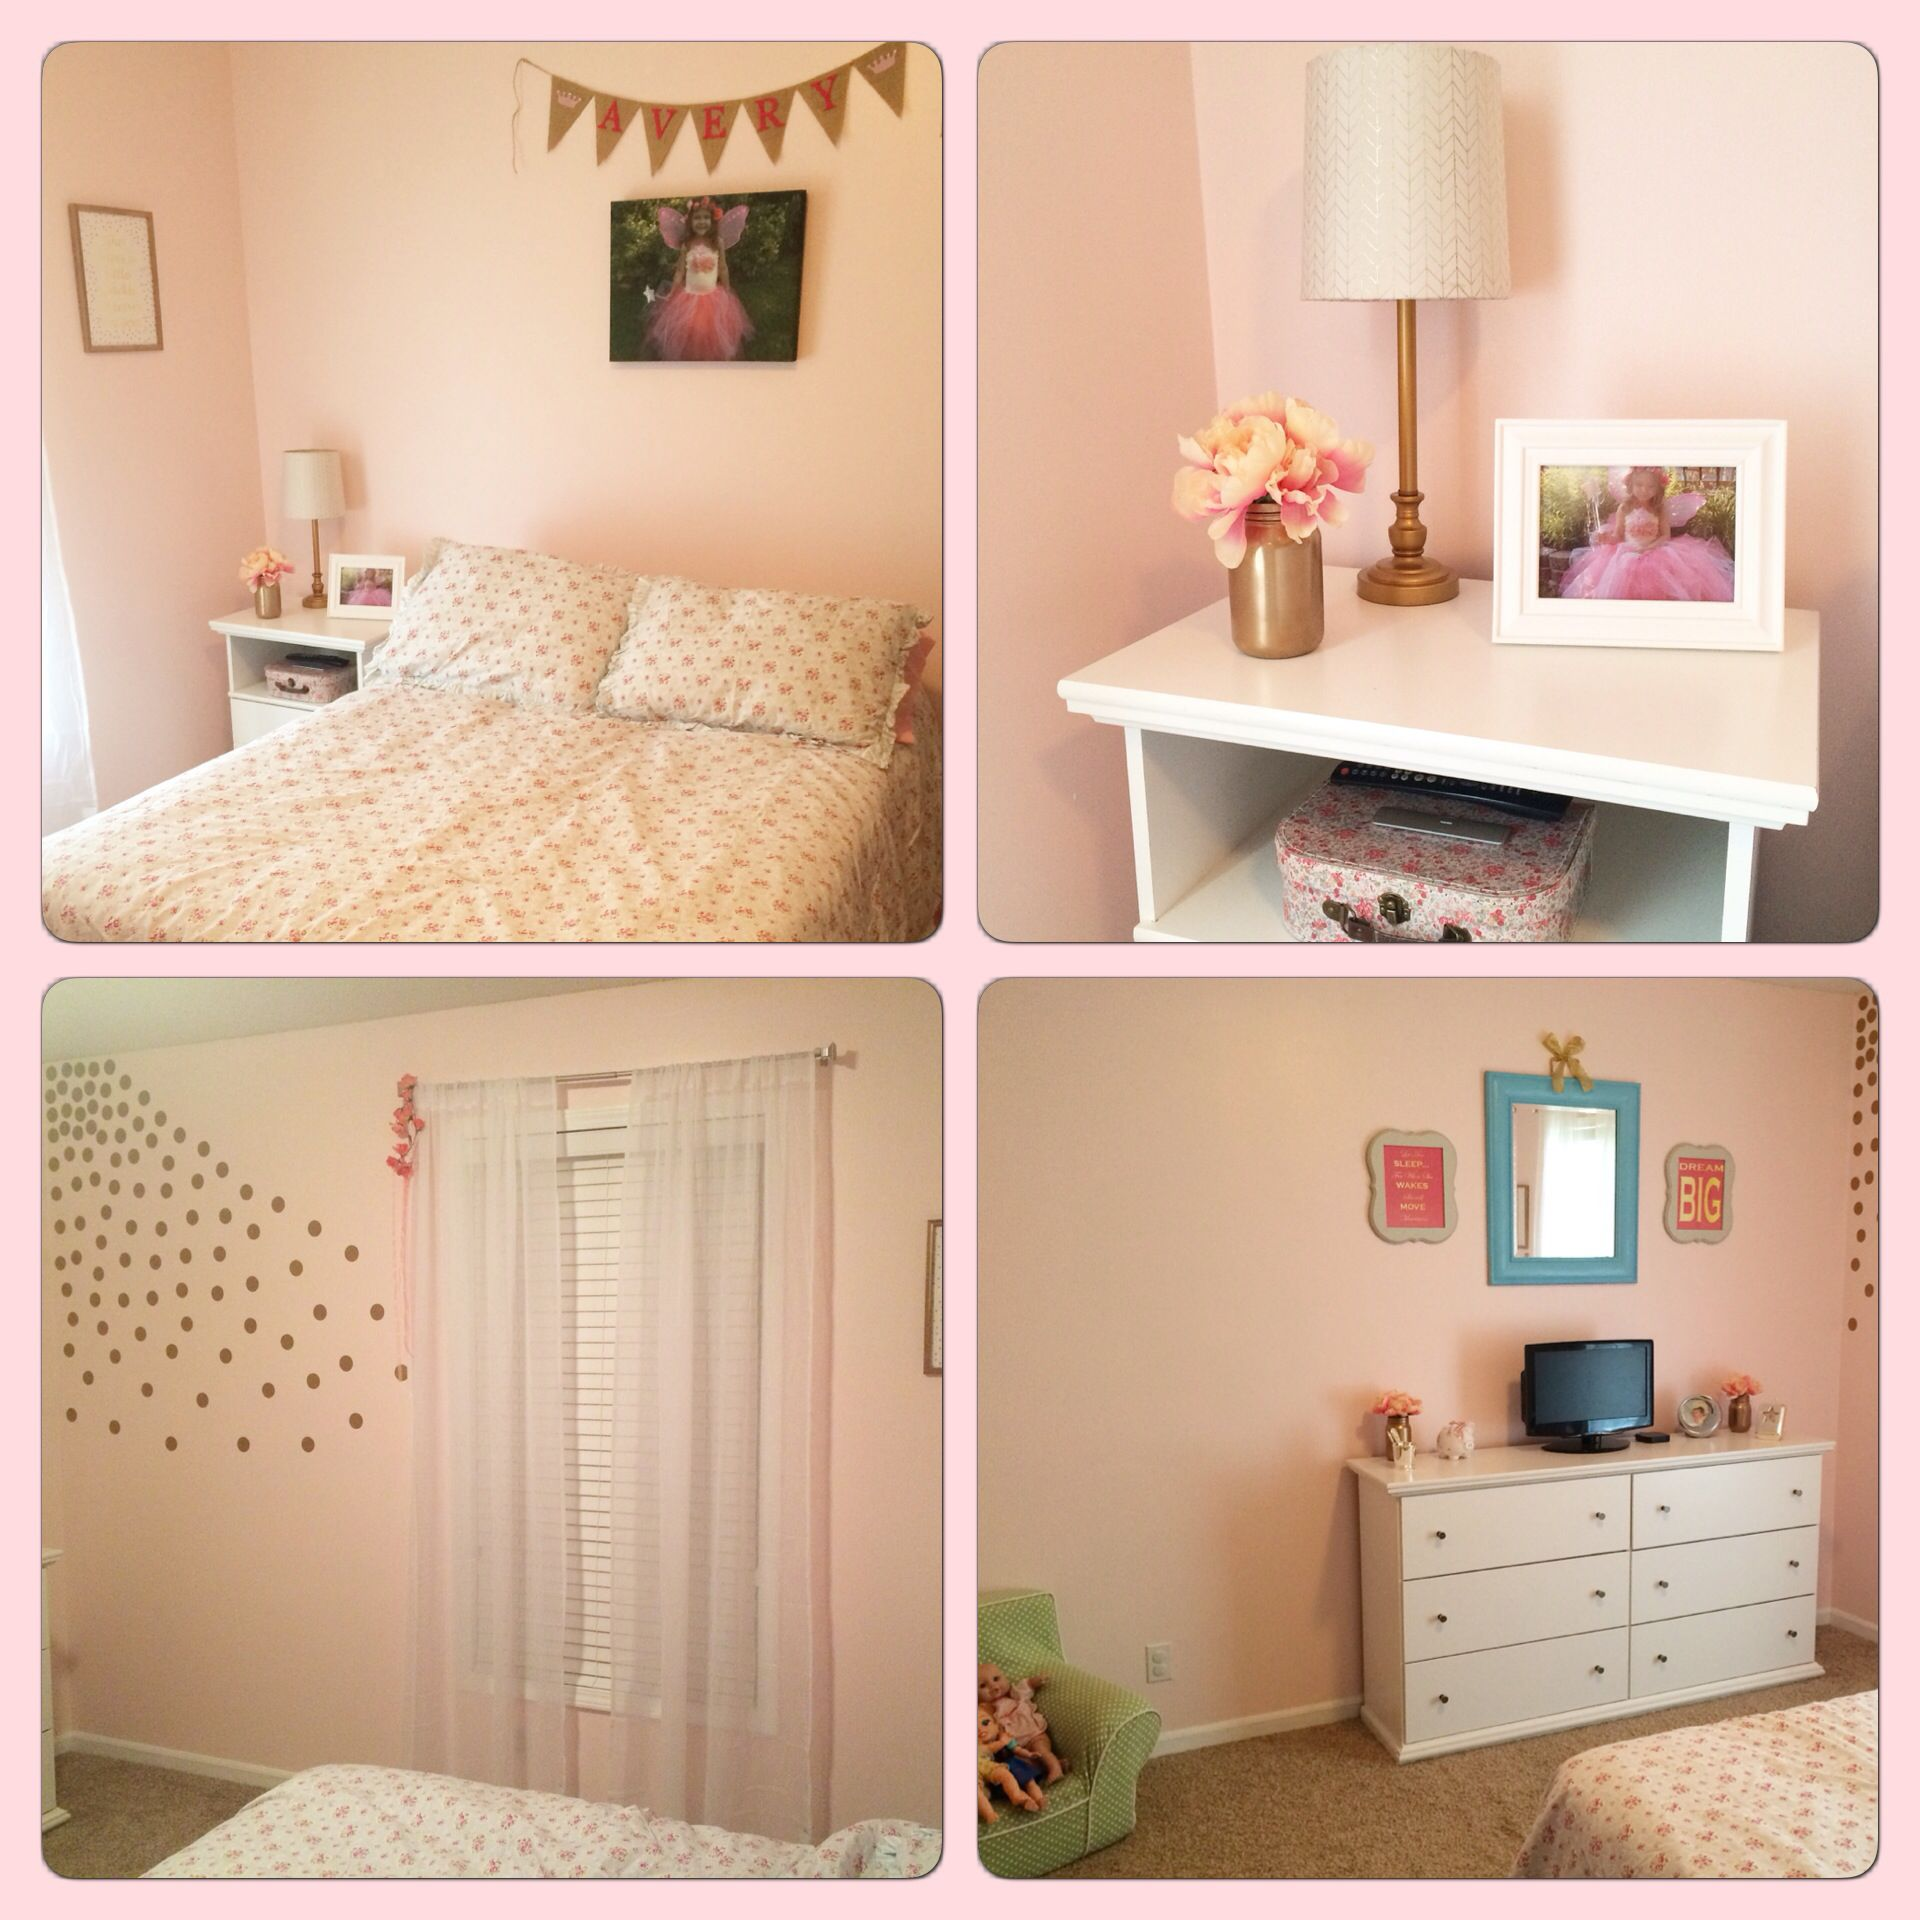 Shabby Chic Bedroom Paint Colors Little Girls Bedroom Ideas Vintage Taylor Swift Bedroom Decorating Ideas Before And After Small Bedroom Makeovers